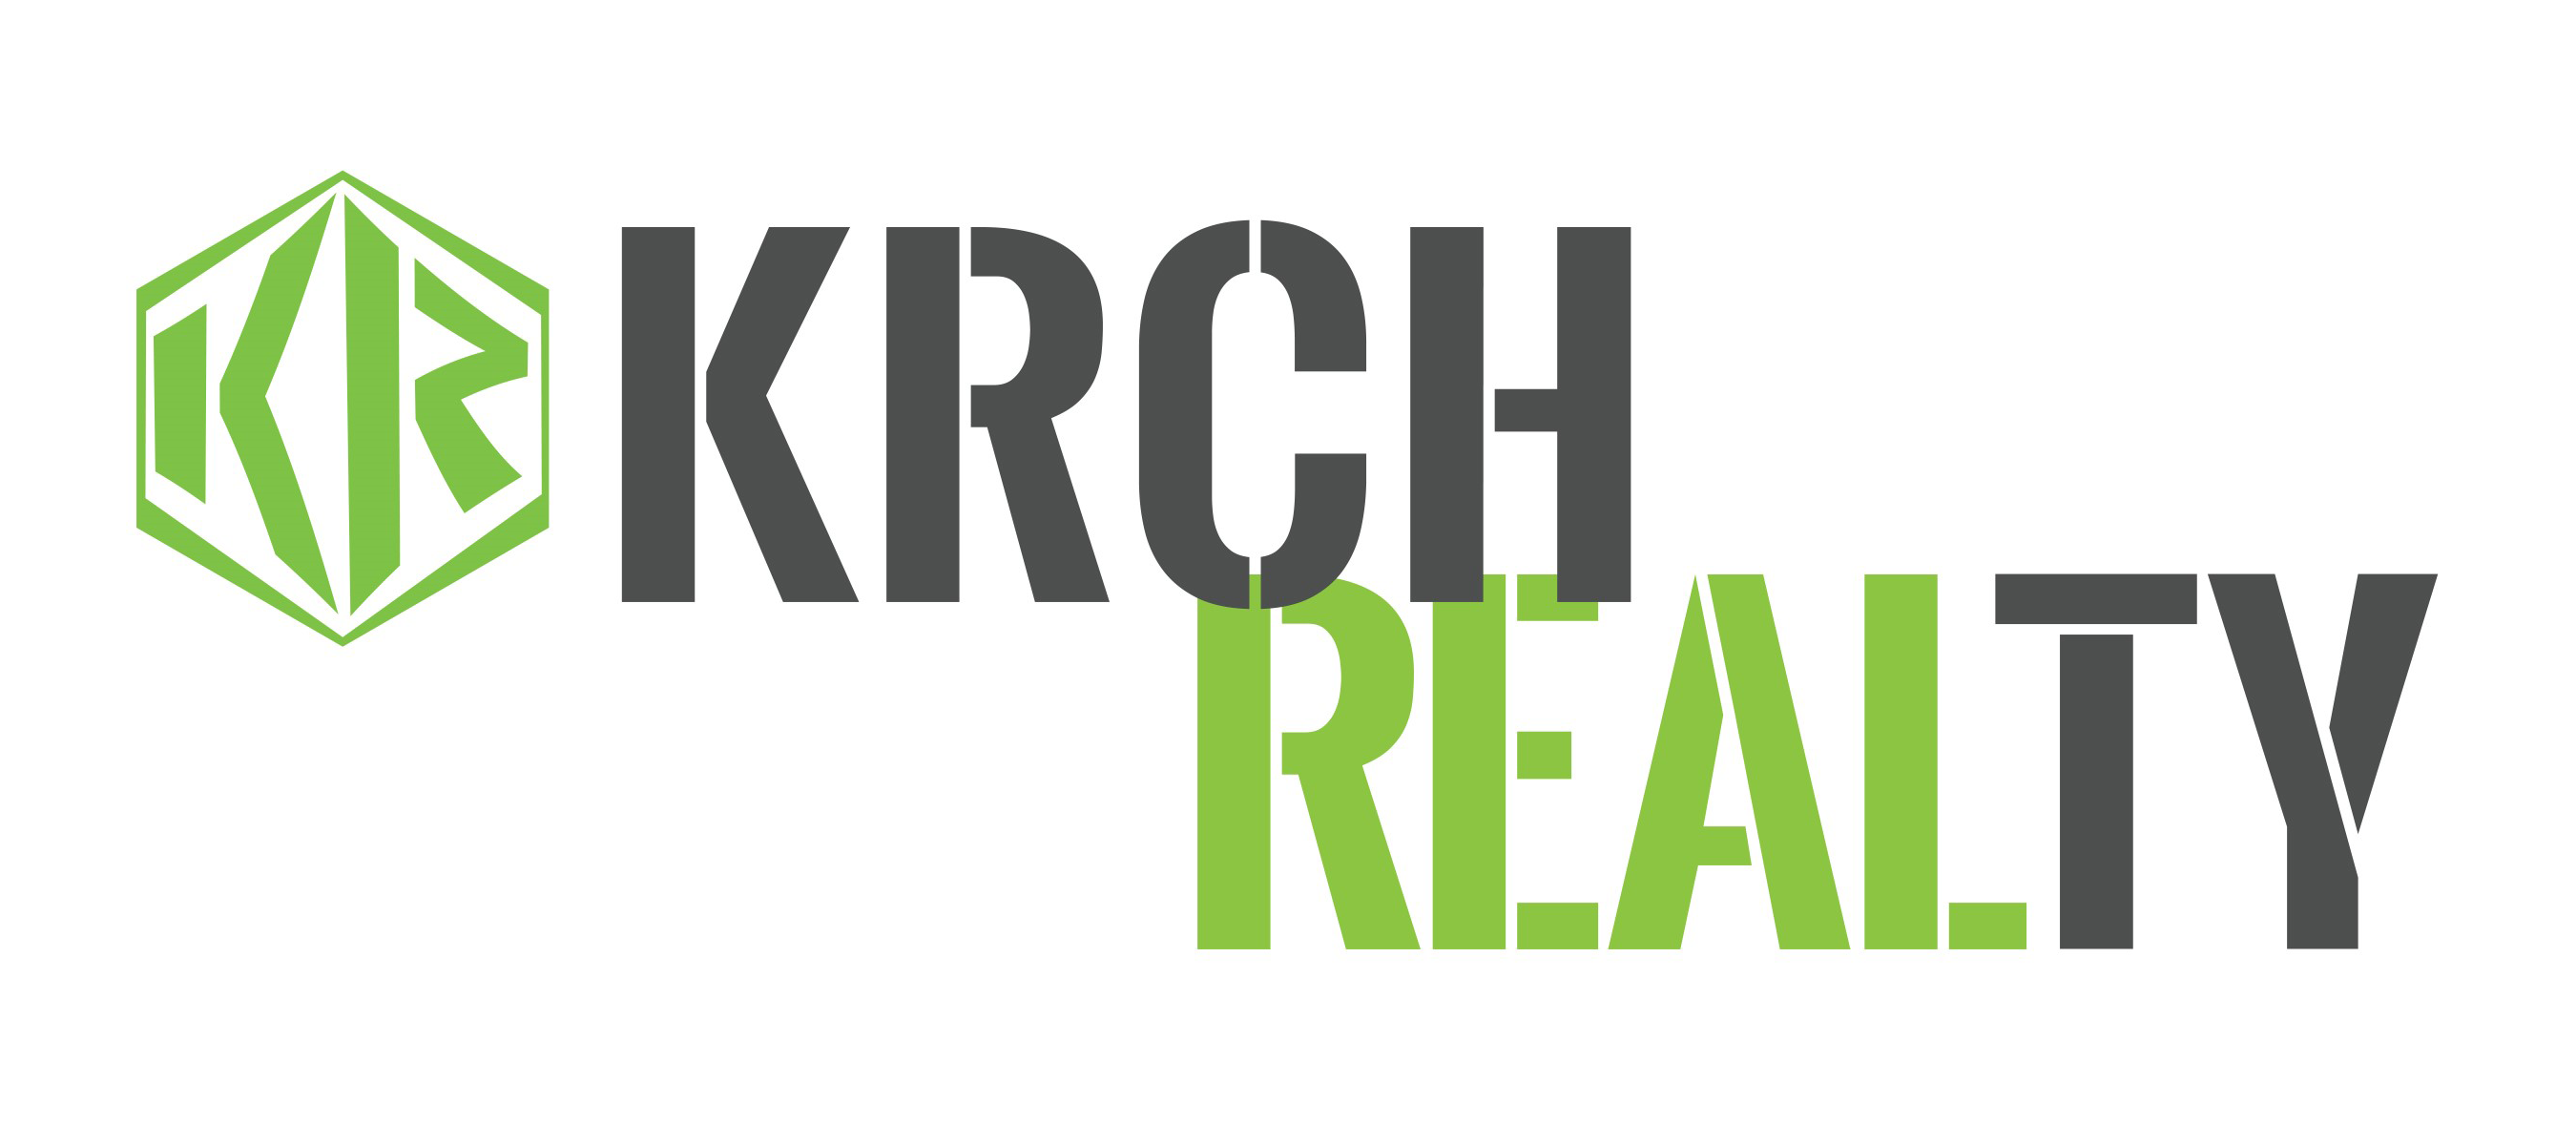 Krch Realty Announces Opening of Krch Realty Cleveland, Krch Realty's New East Coast Flagship Branch